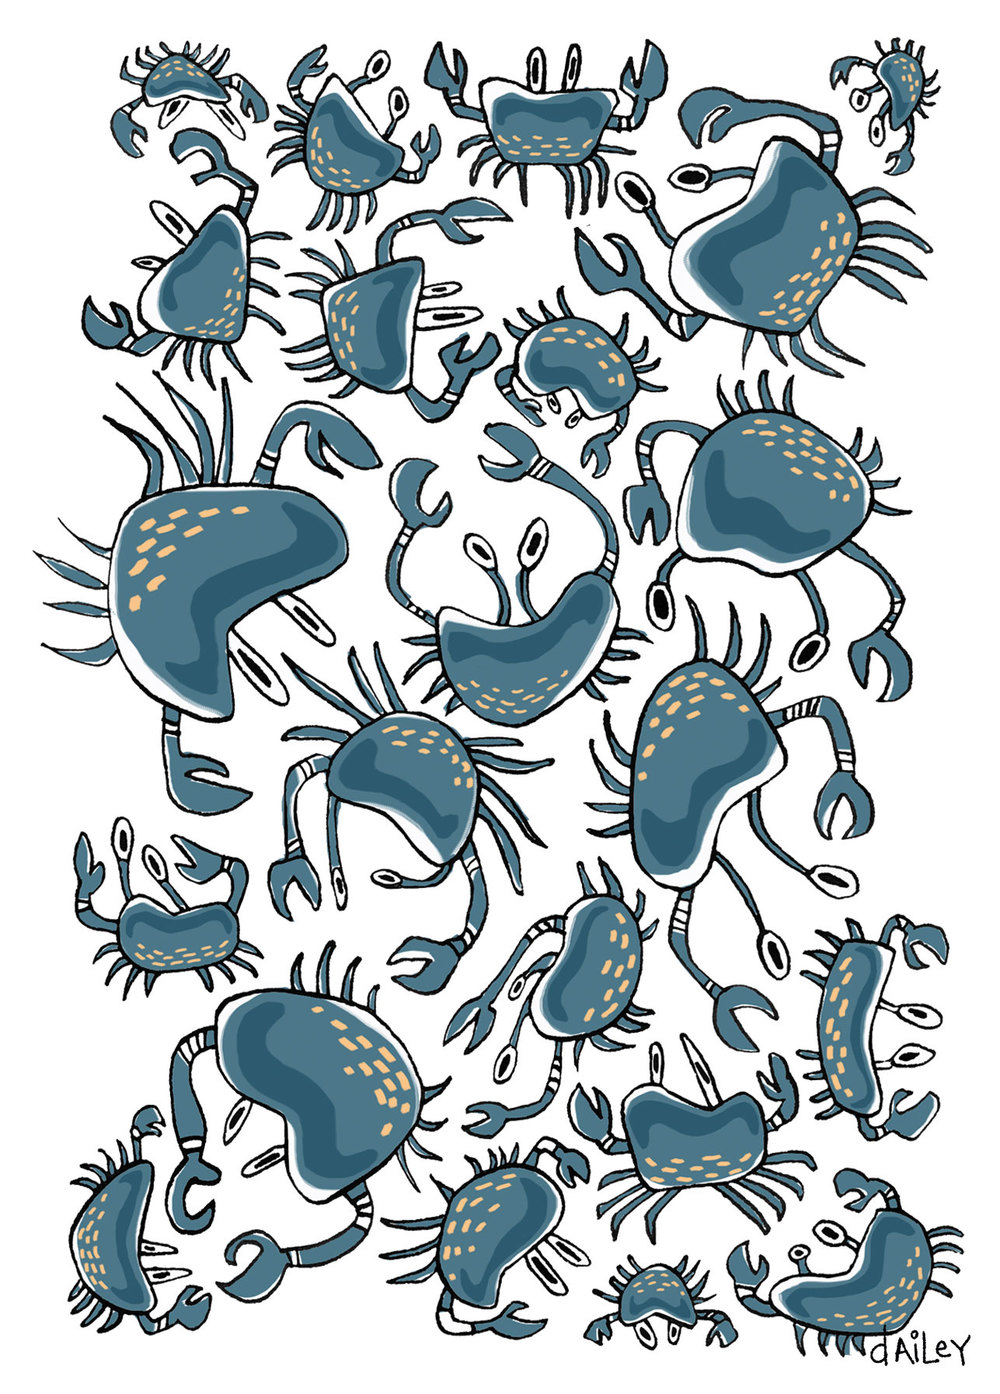 Crabs_CaitlynDailey.jpg